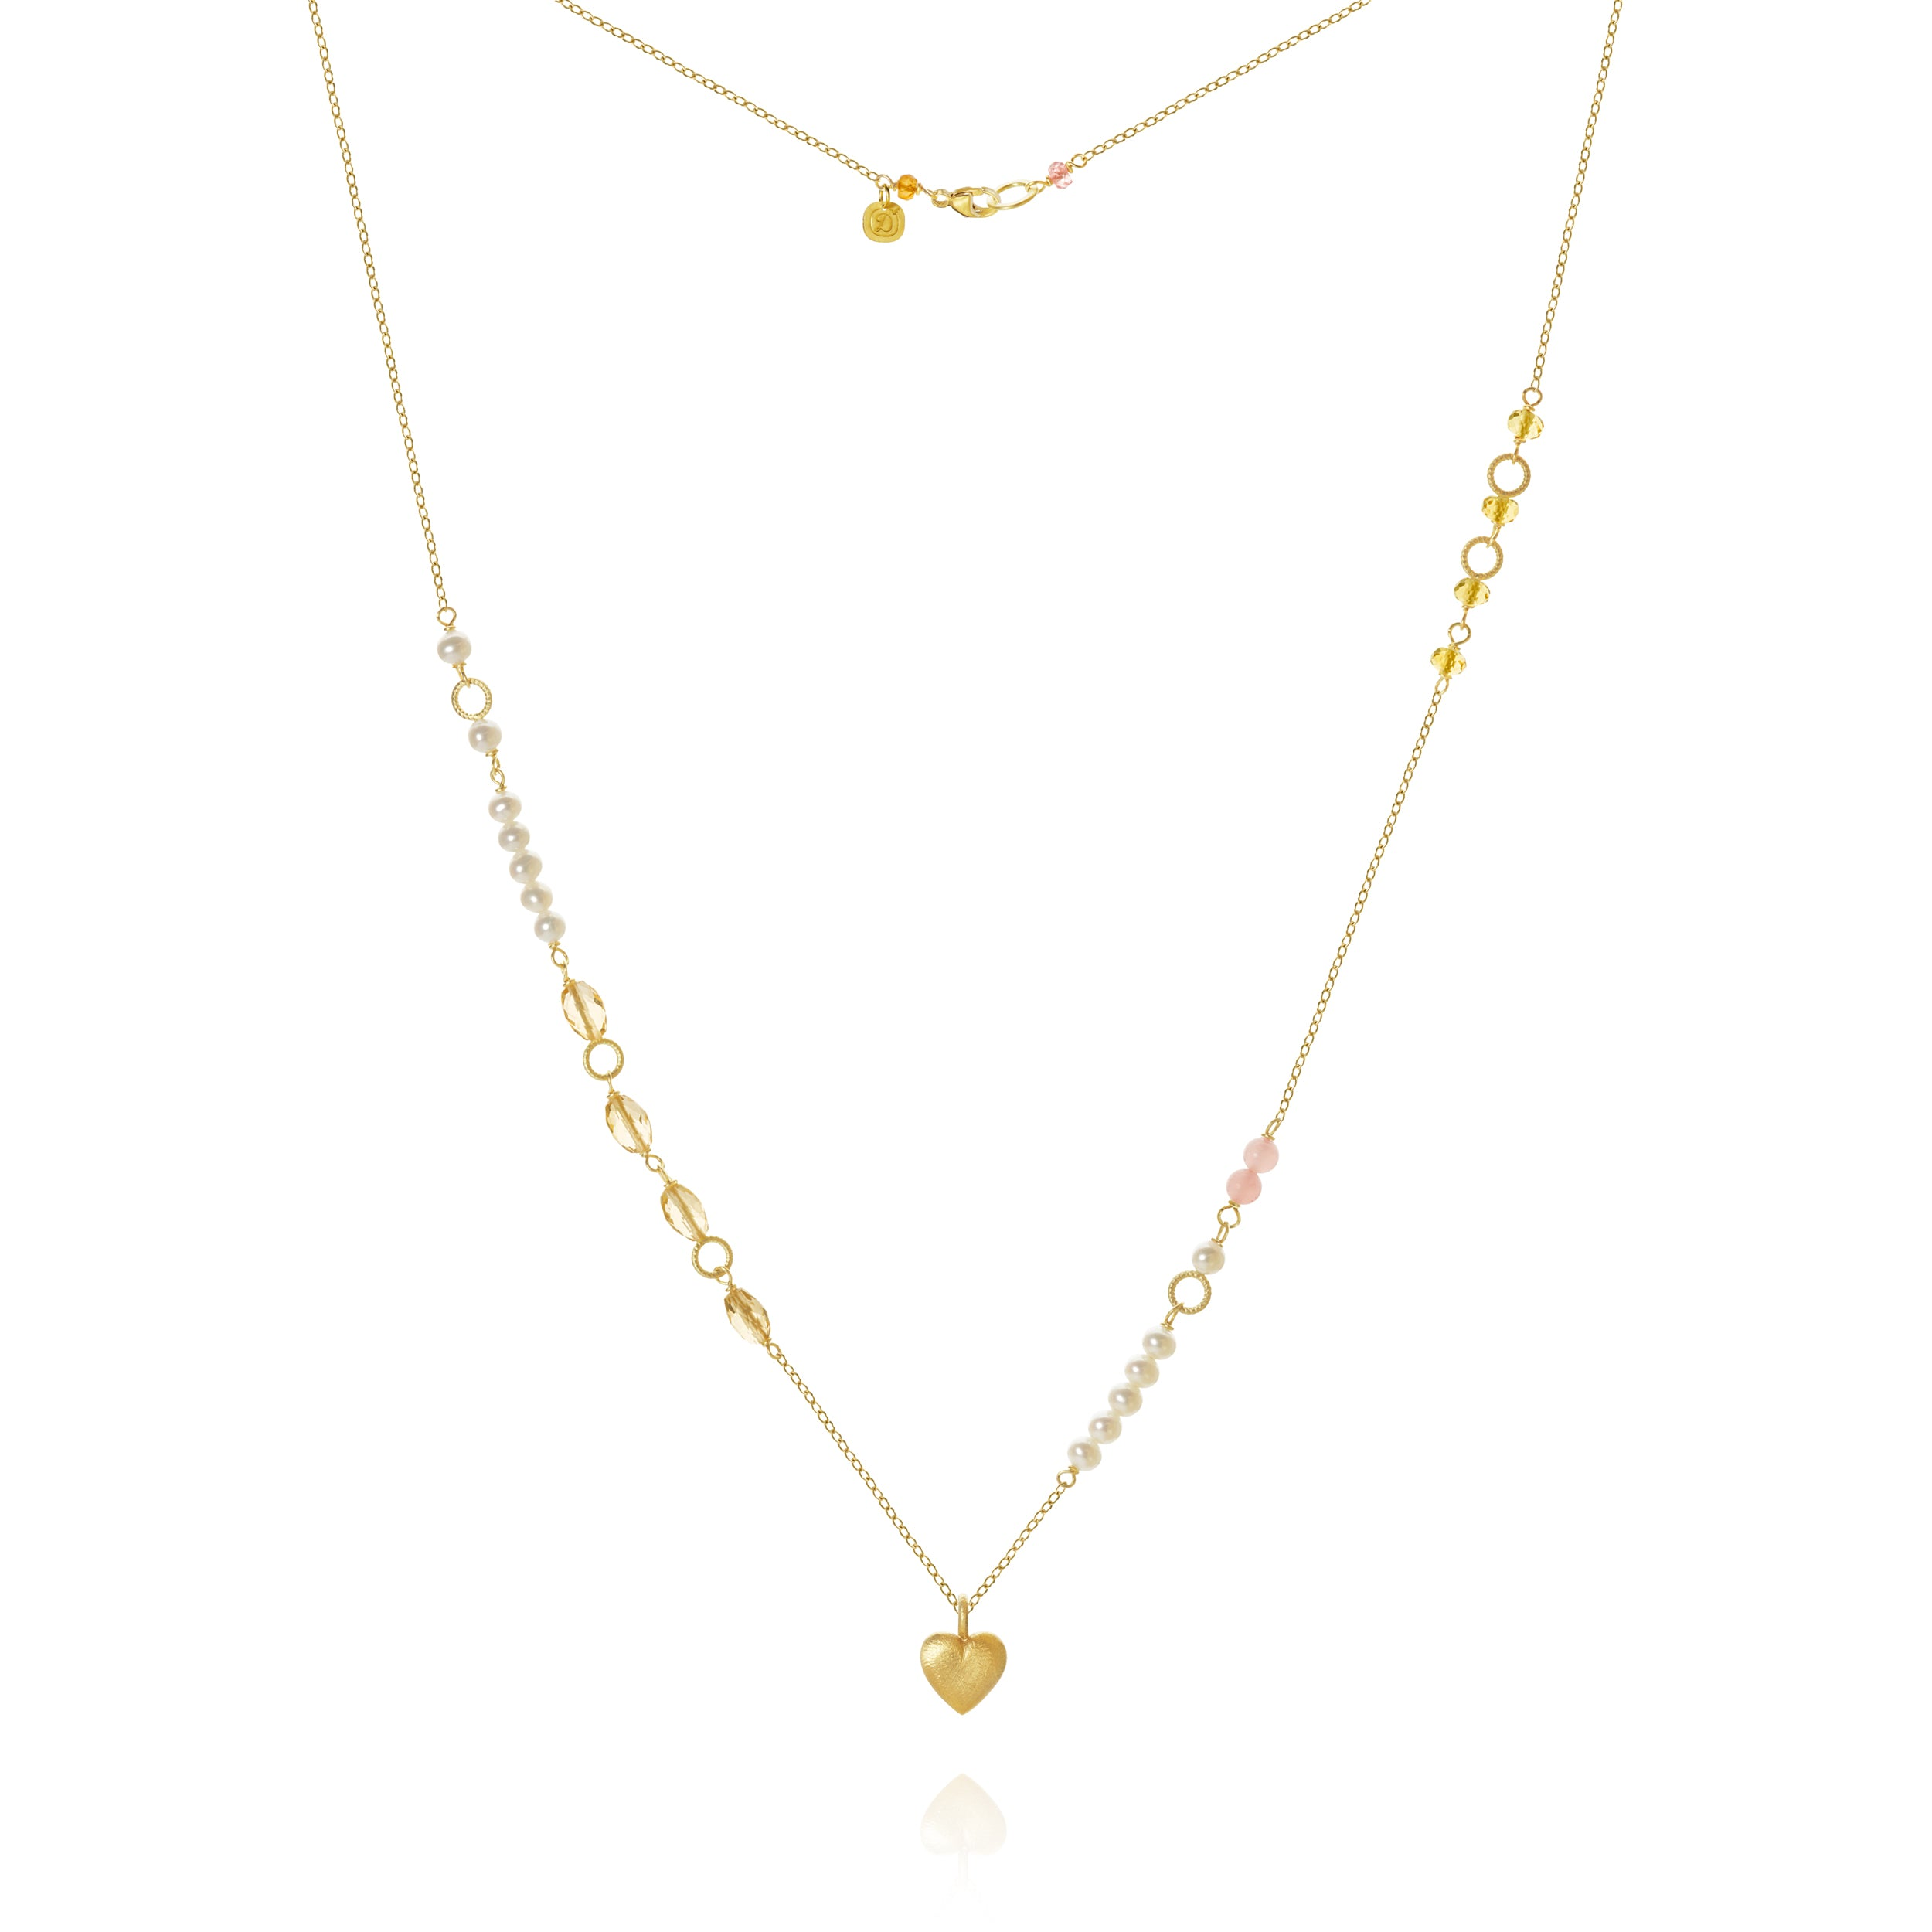 Piccolo Mellow necklace with a heart, sapphire peach, freshwater pearls, cetrin and guava quartz, 62 cm.